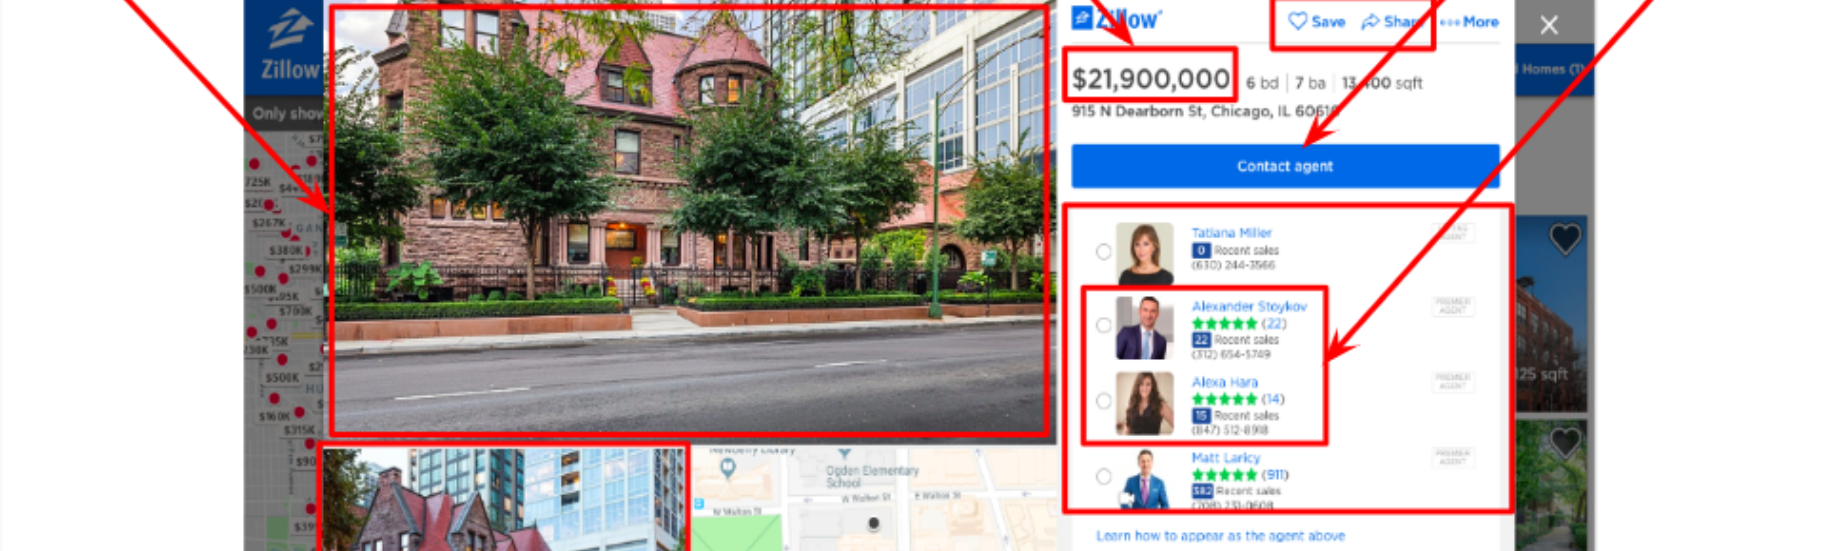 Zillow is the New Craigslist - James - Medium